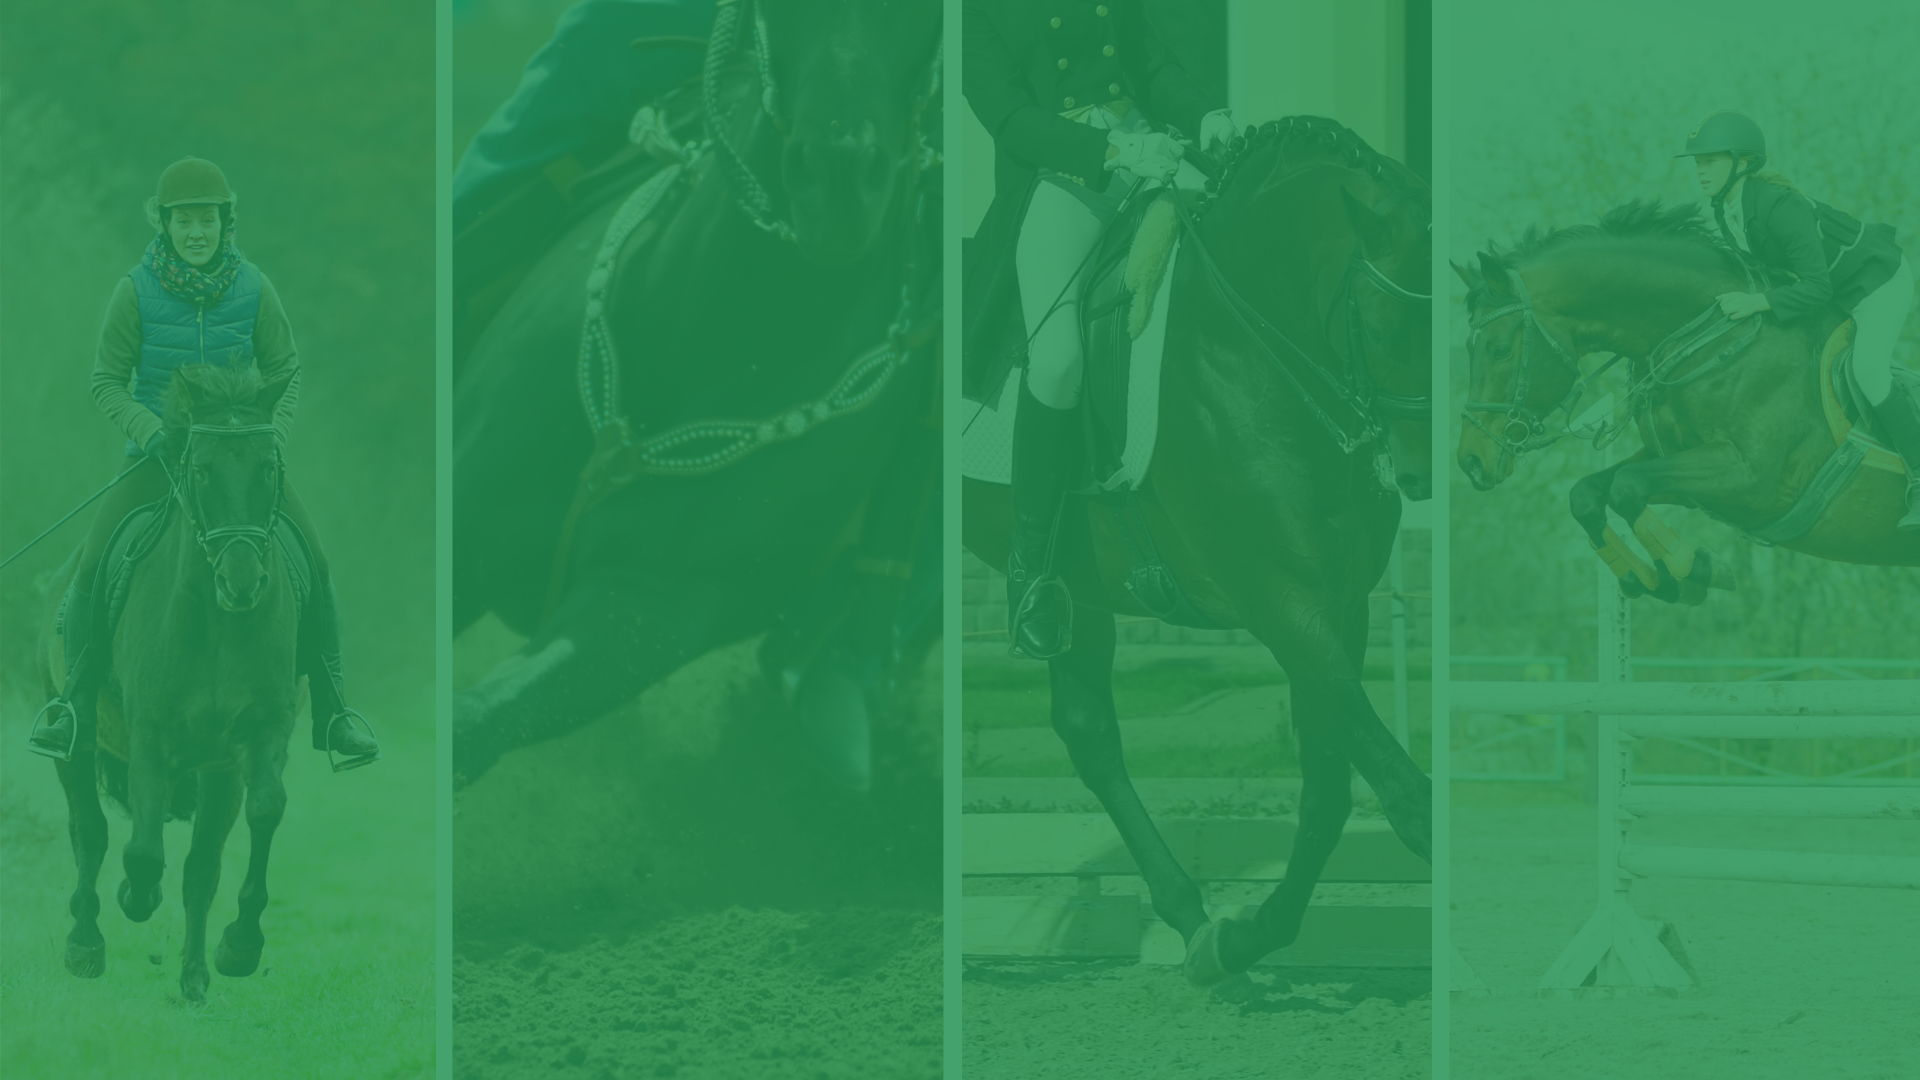 Four images of equestrians in different sports